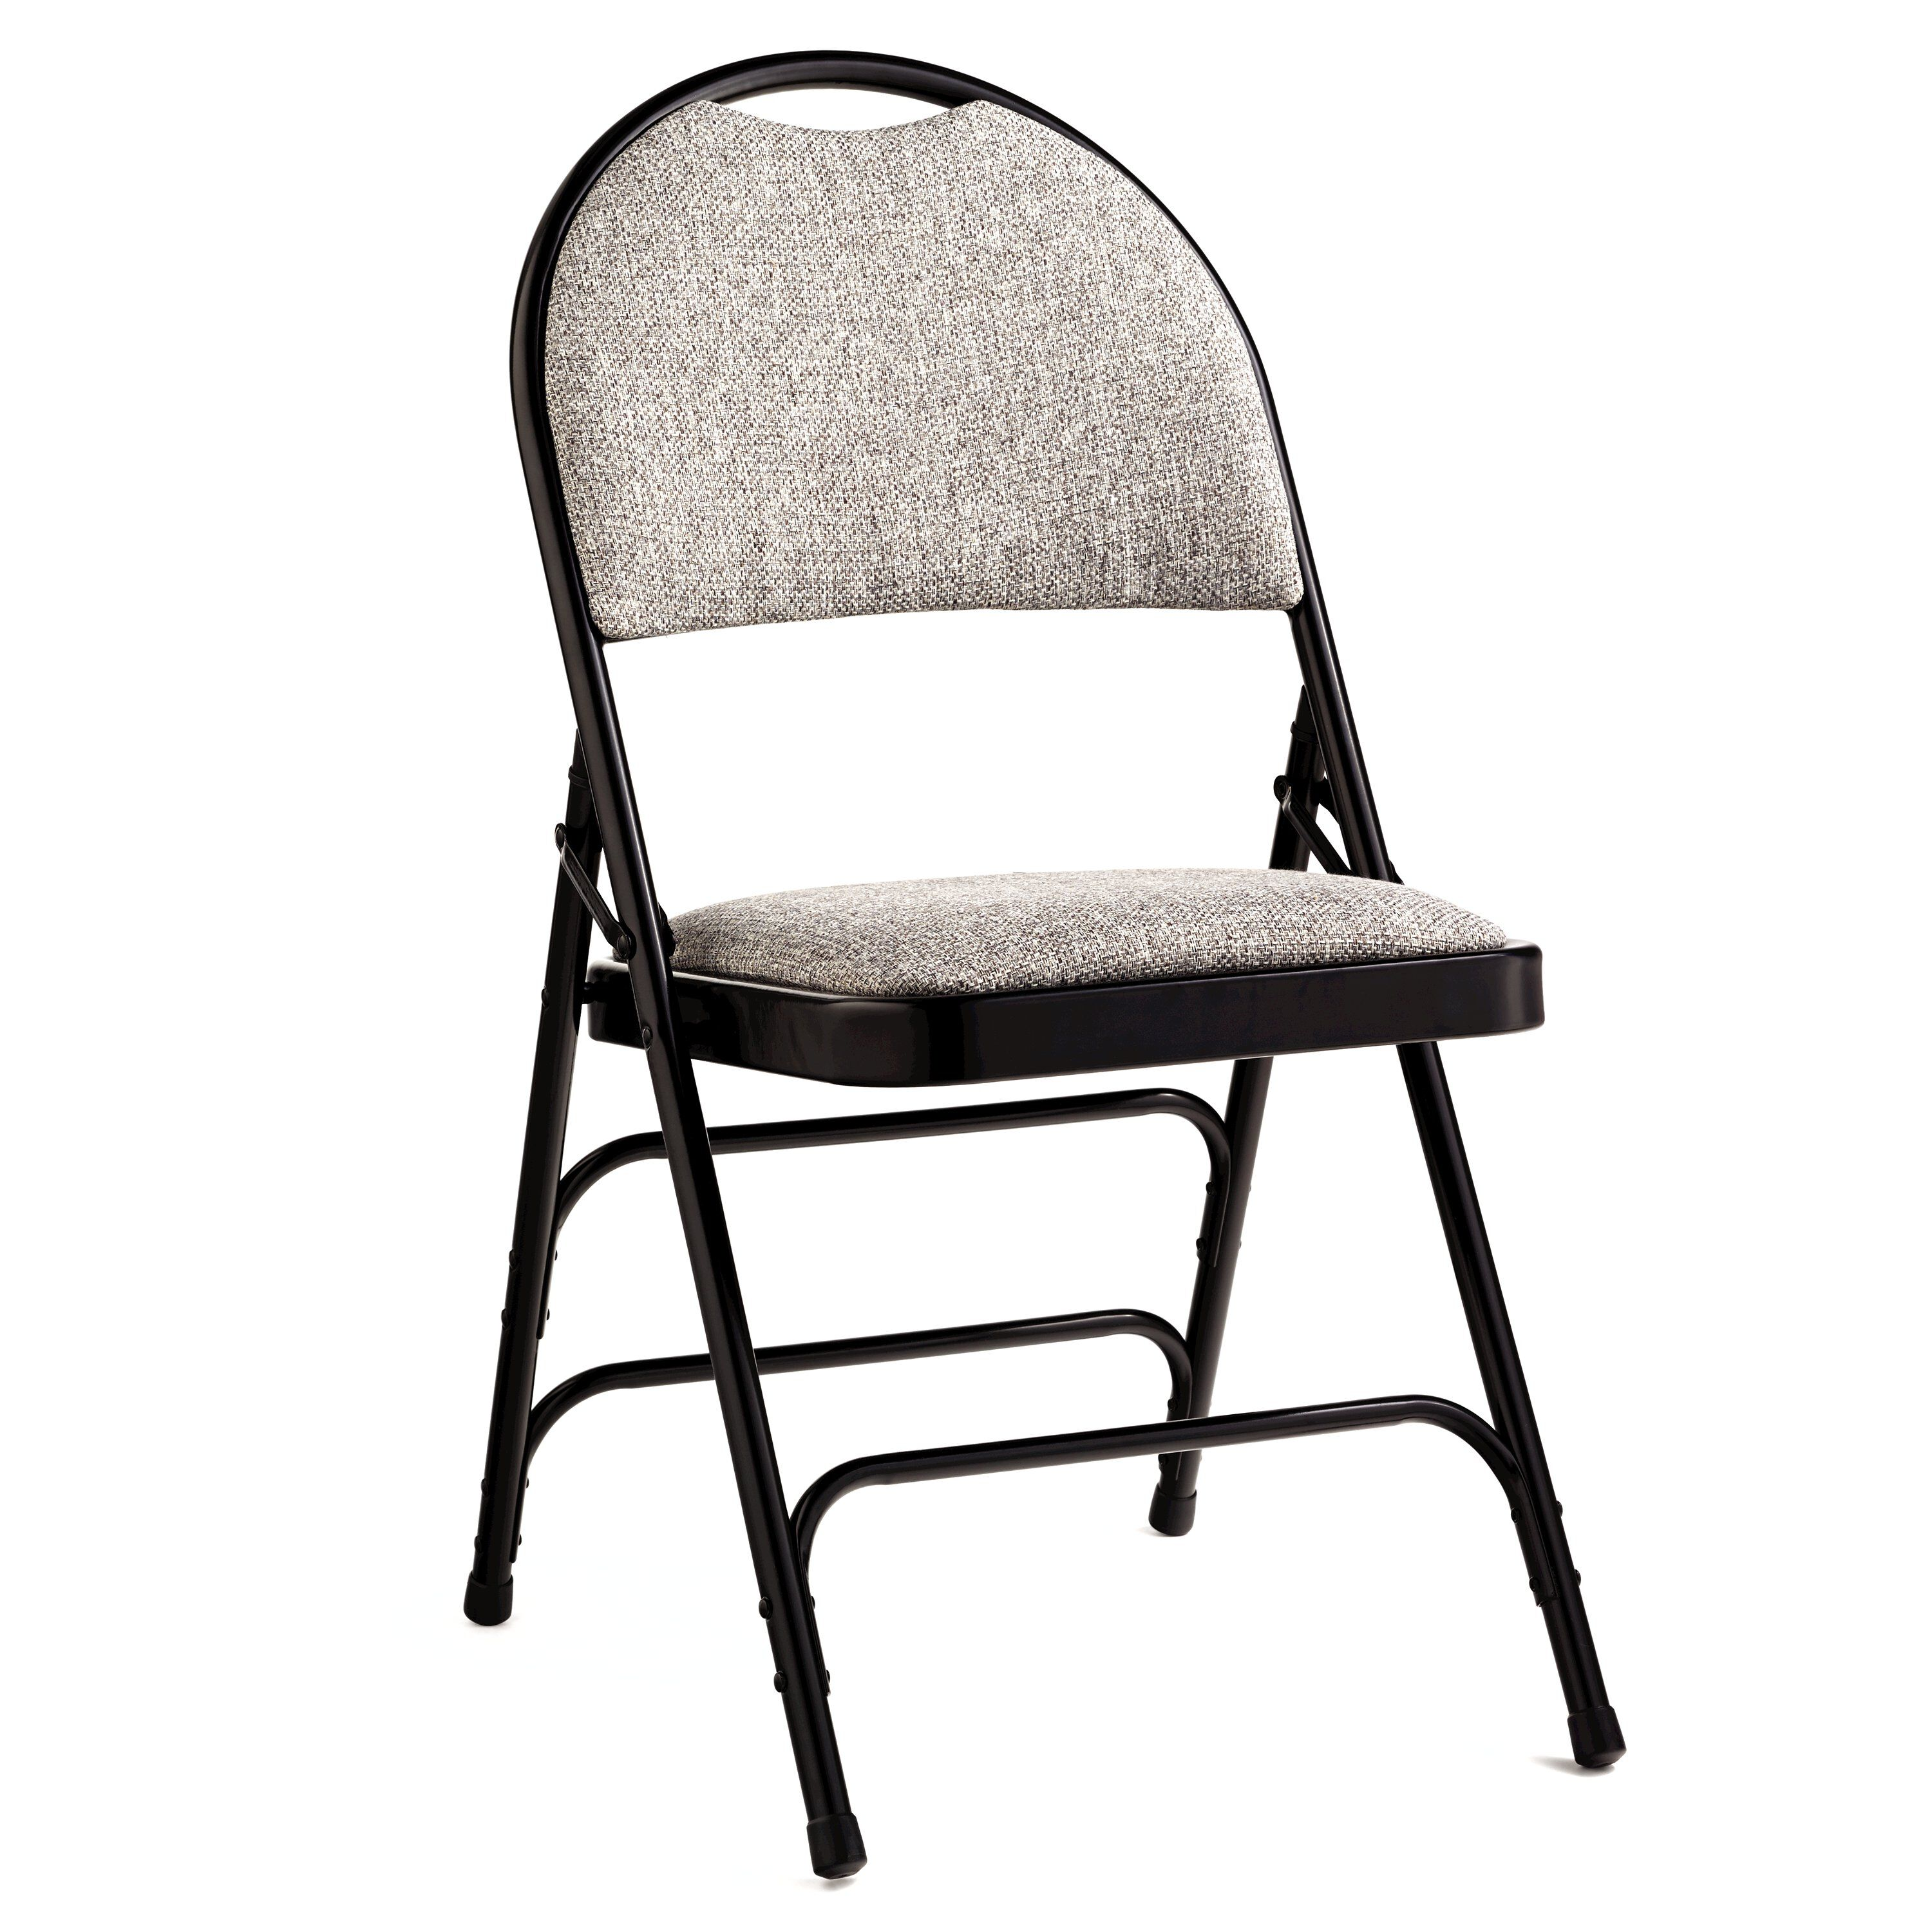 folding chair outlet childrens chairs samsonite comfort series steel and fabric case 4